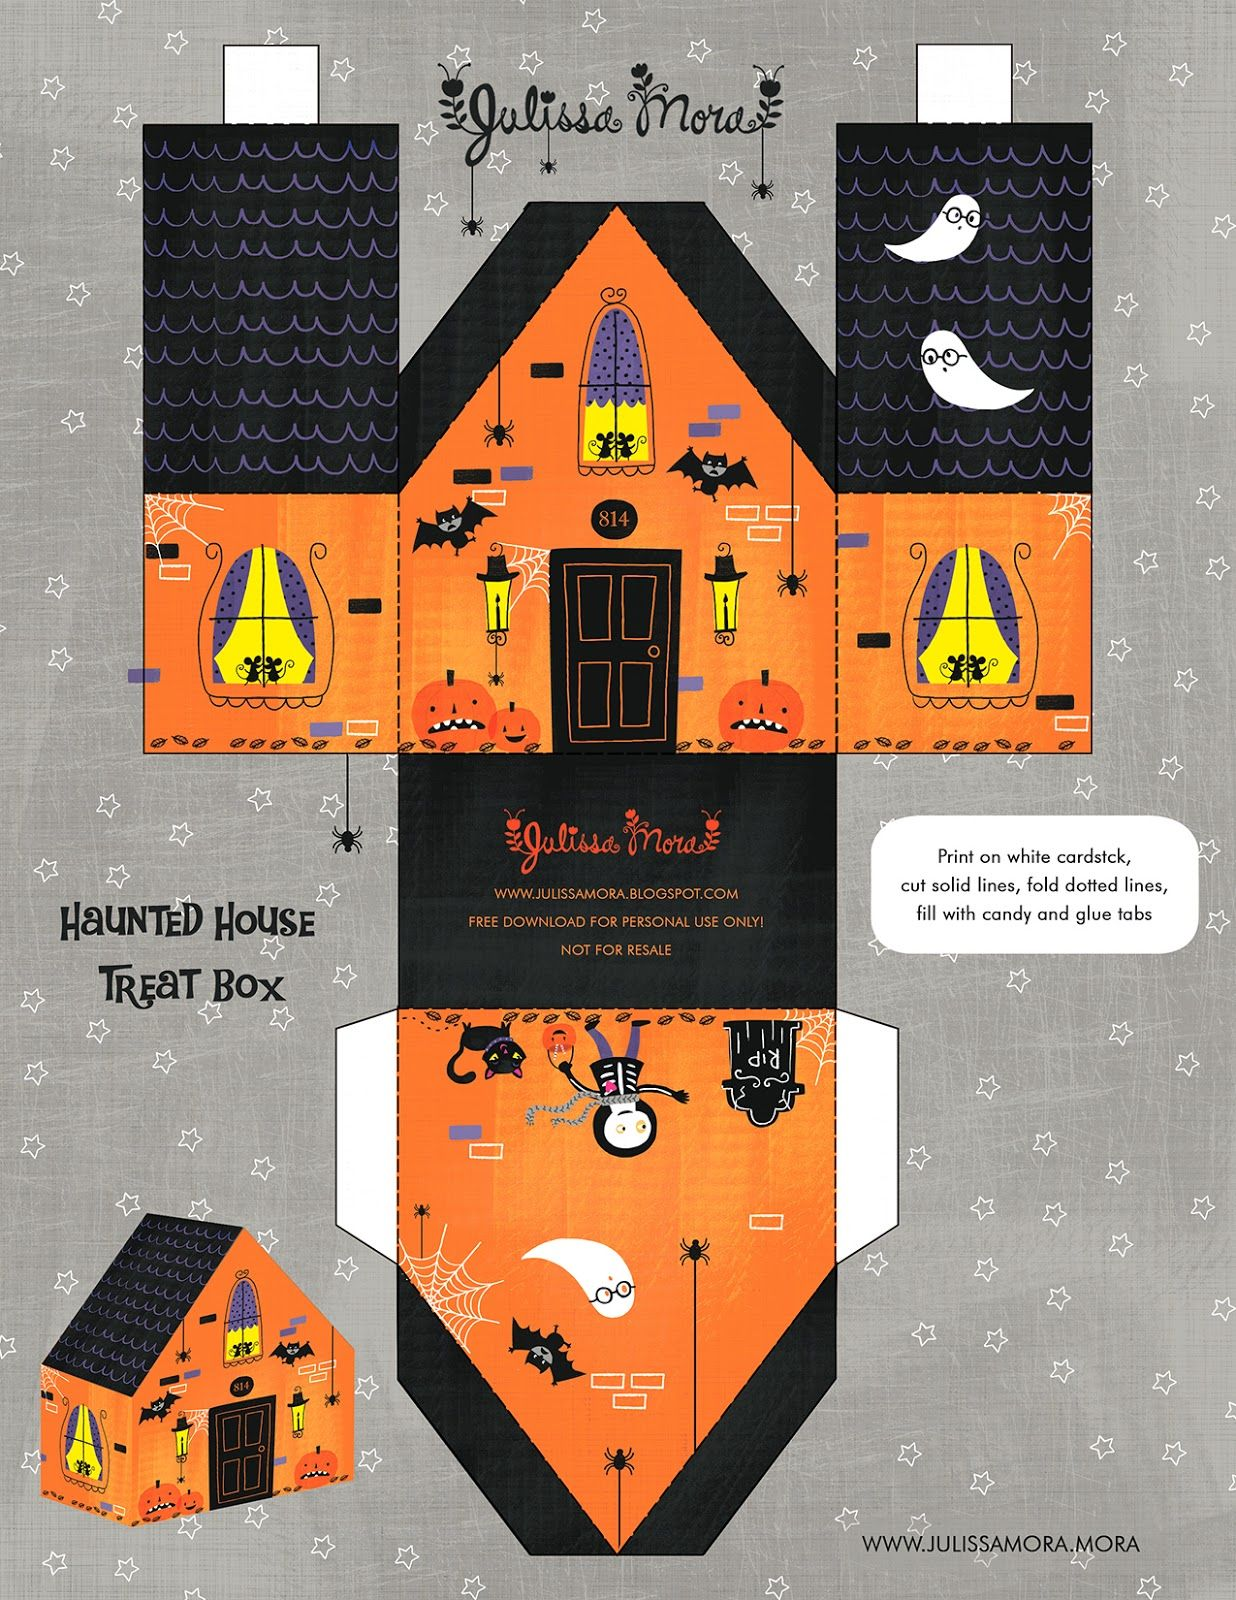 Halloween haunted house printable by Julissa Mora. Halloween, Free,  Download, Printable,